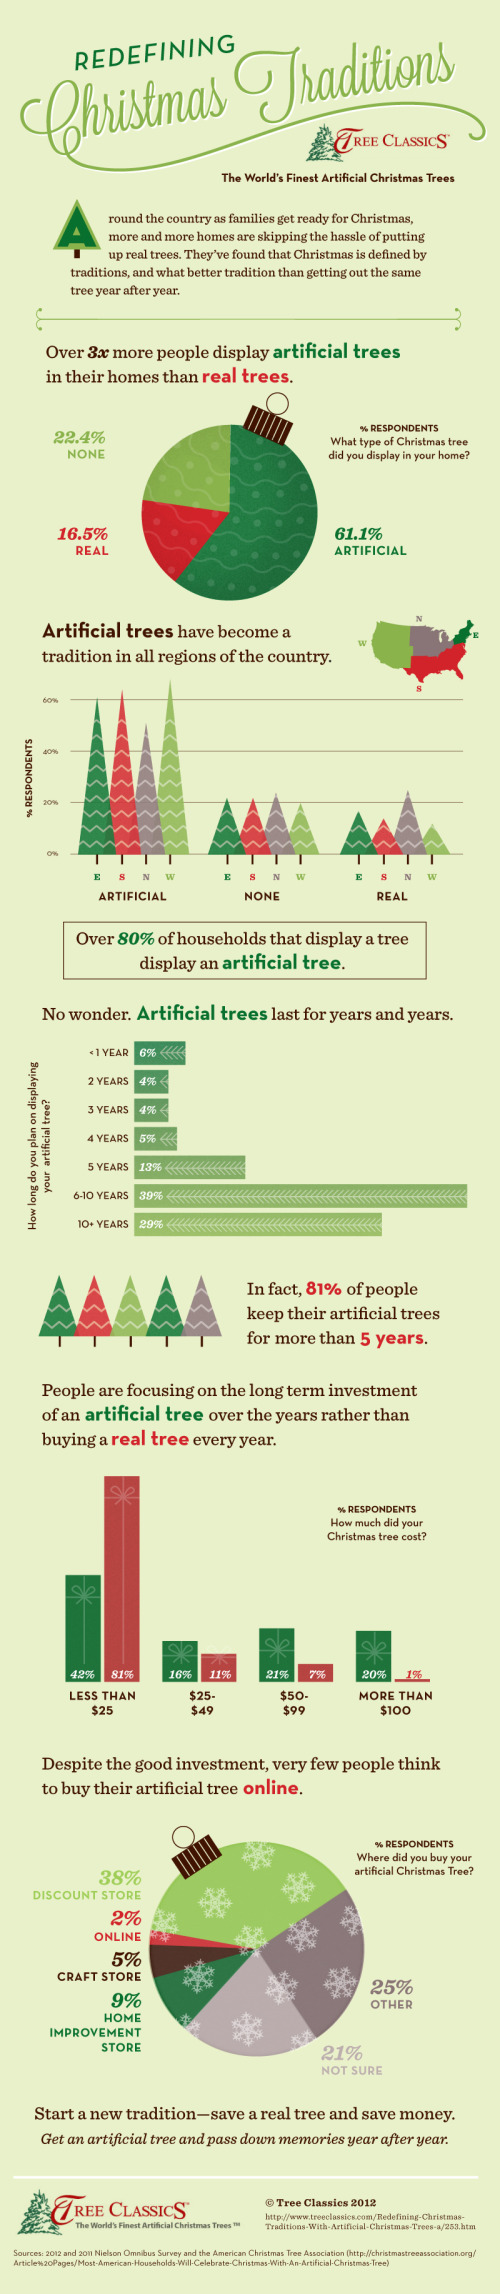 The New Christmas Tradition...Artificial Christmas Trees! infographic